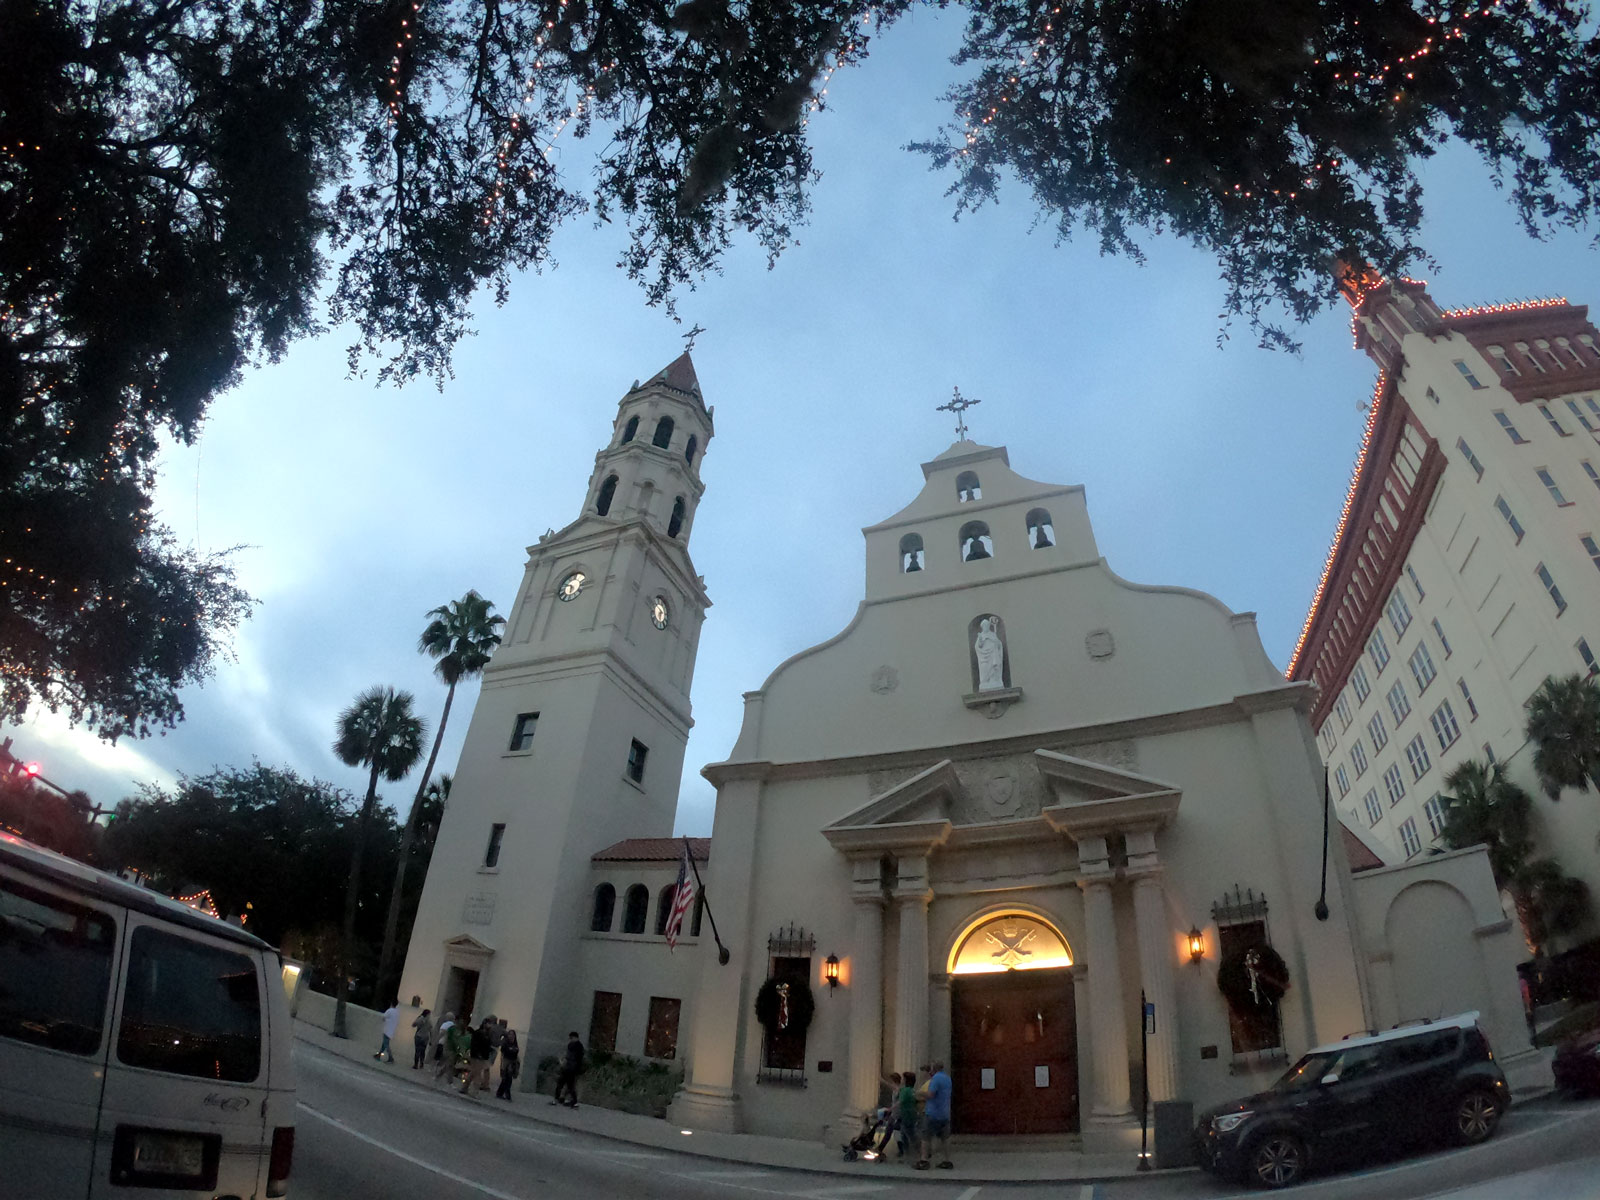 Exterior of Cathedral Basilica of Saint Augustine in evening in Saint Augustine, Florida